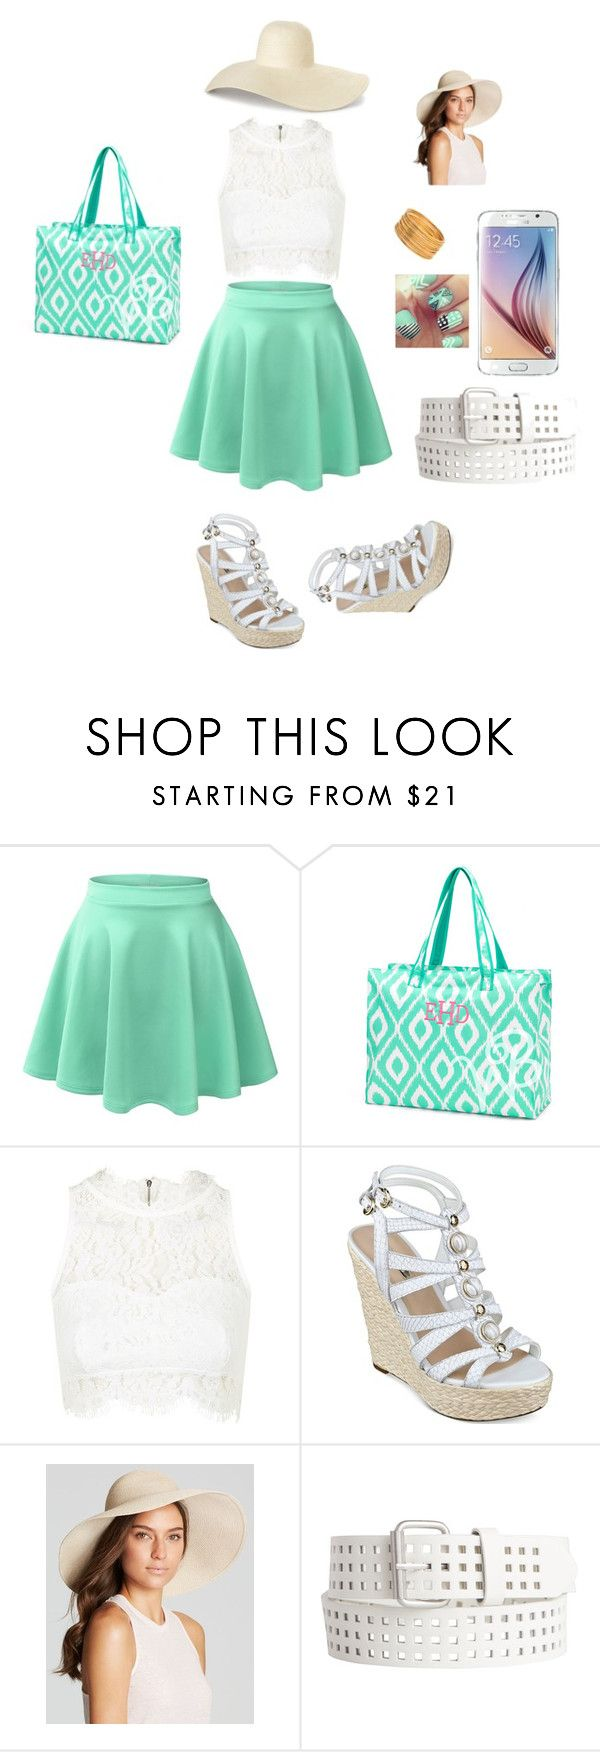 """PM 1"" by permoment ❤ liked on Polyvore featuring LE3NO, Topshop, GUESS, Eric Javits and Pieces"